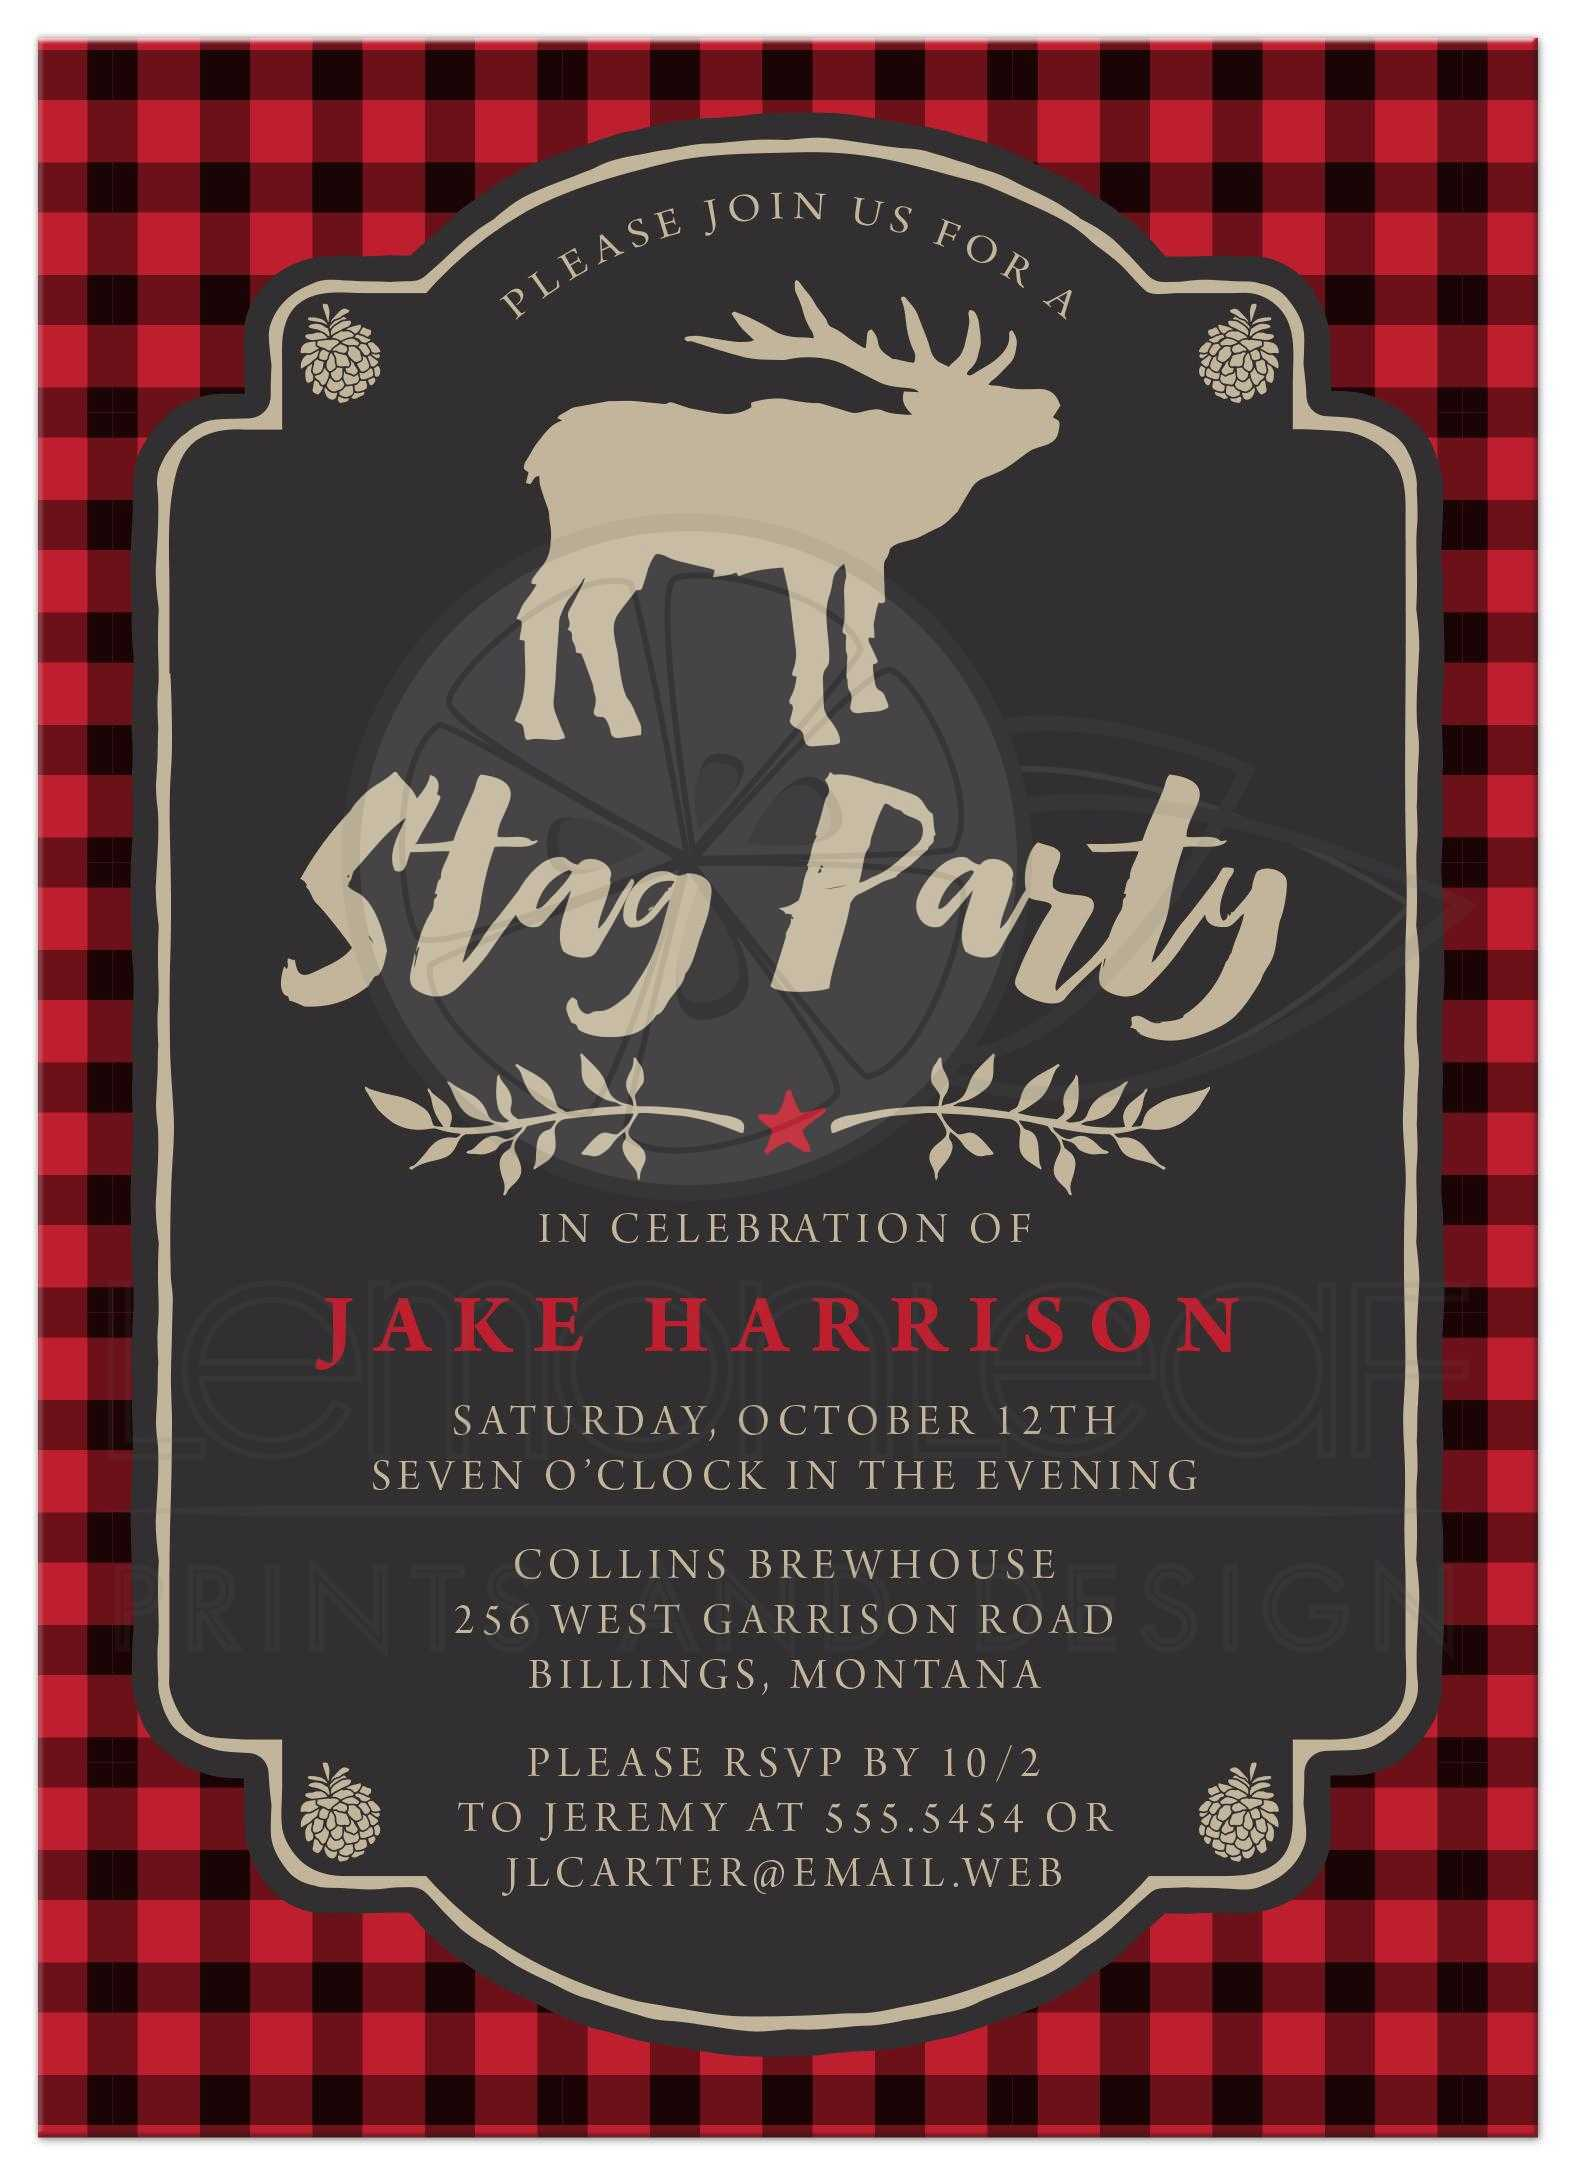 Bachelor Party Invitations Rustic Red Black Plaid Stag Party – Stag Party Invitation